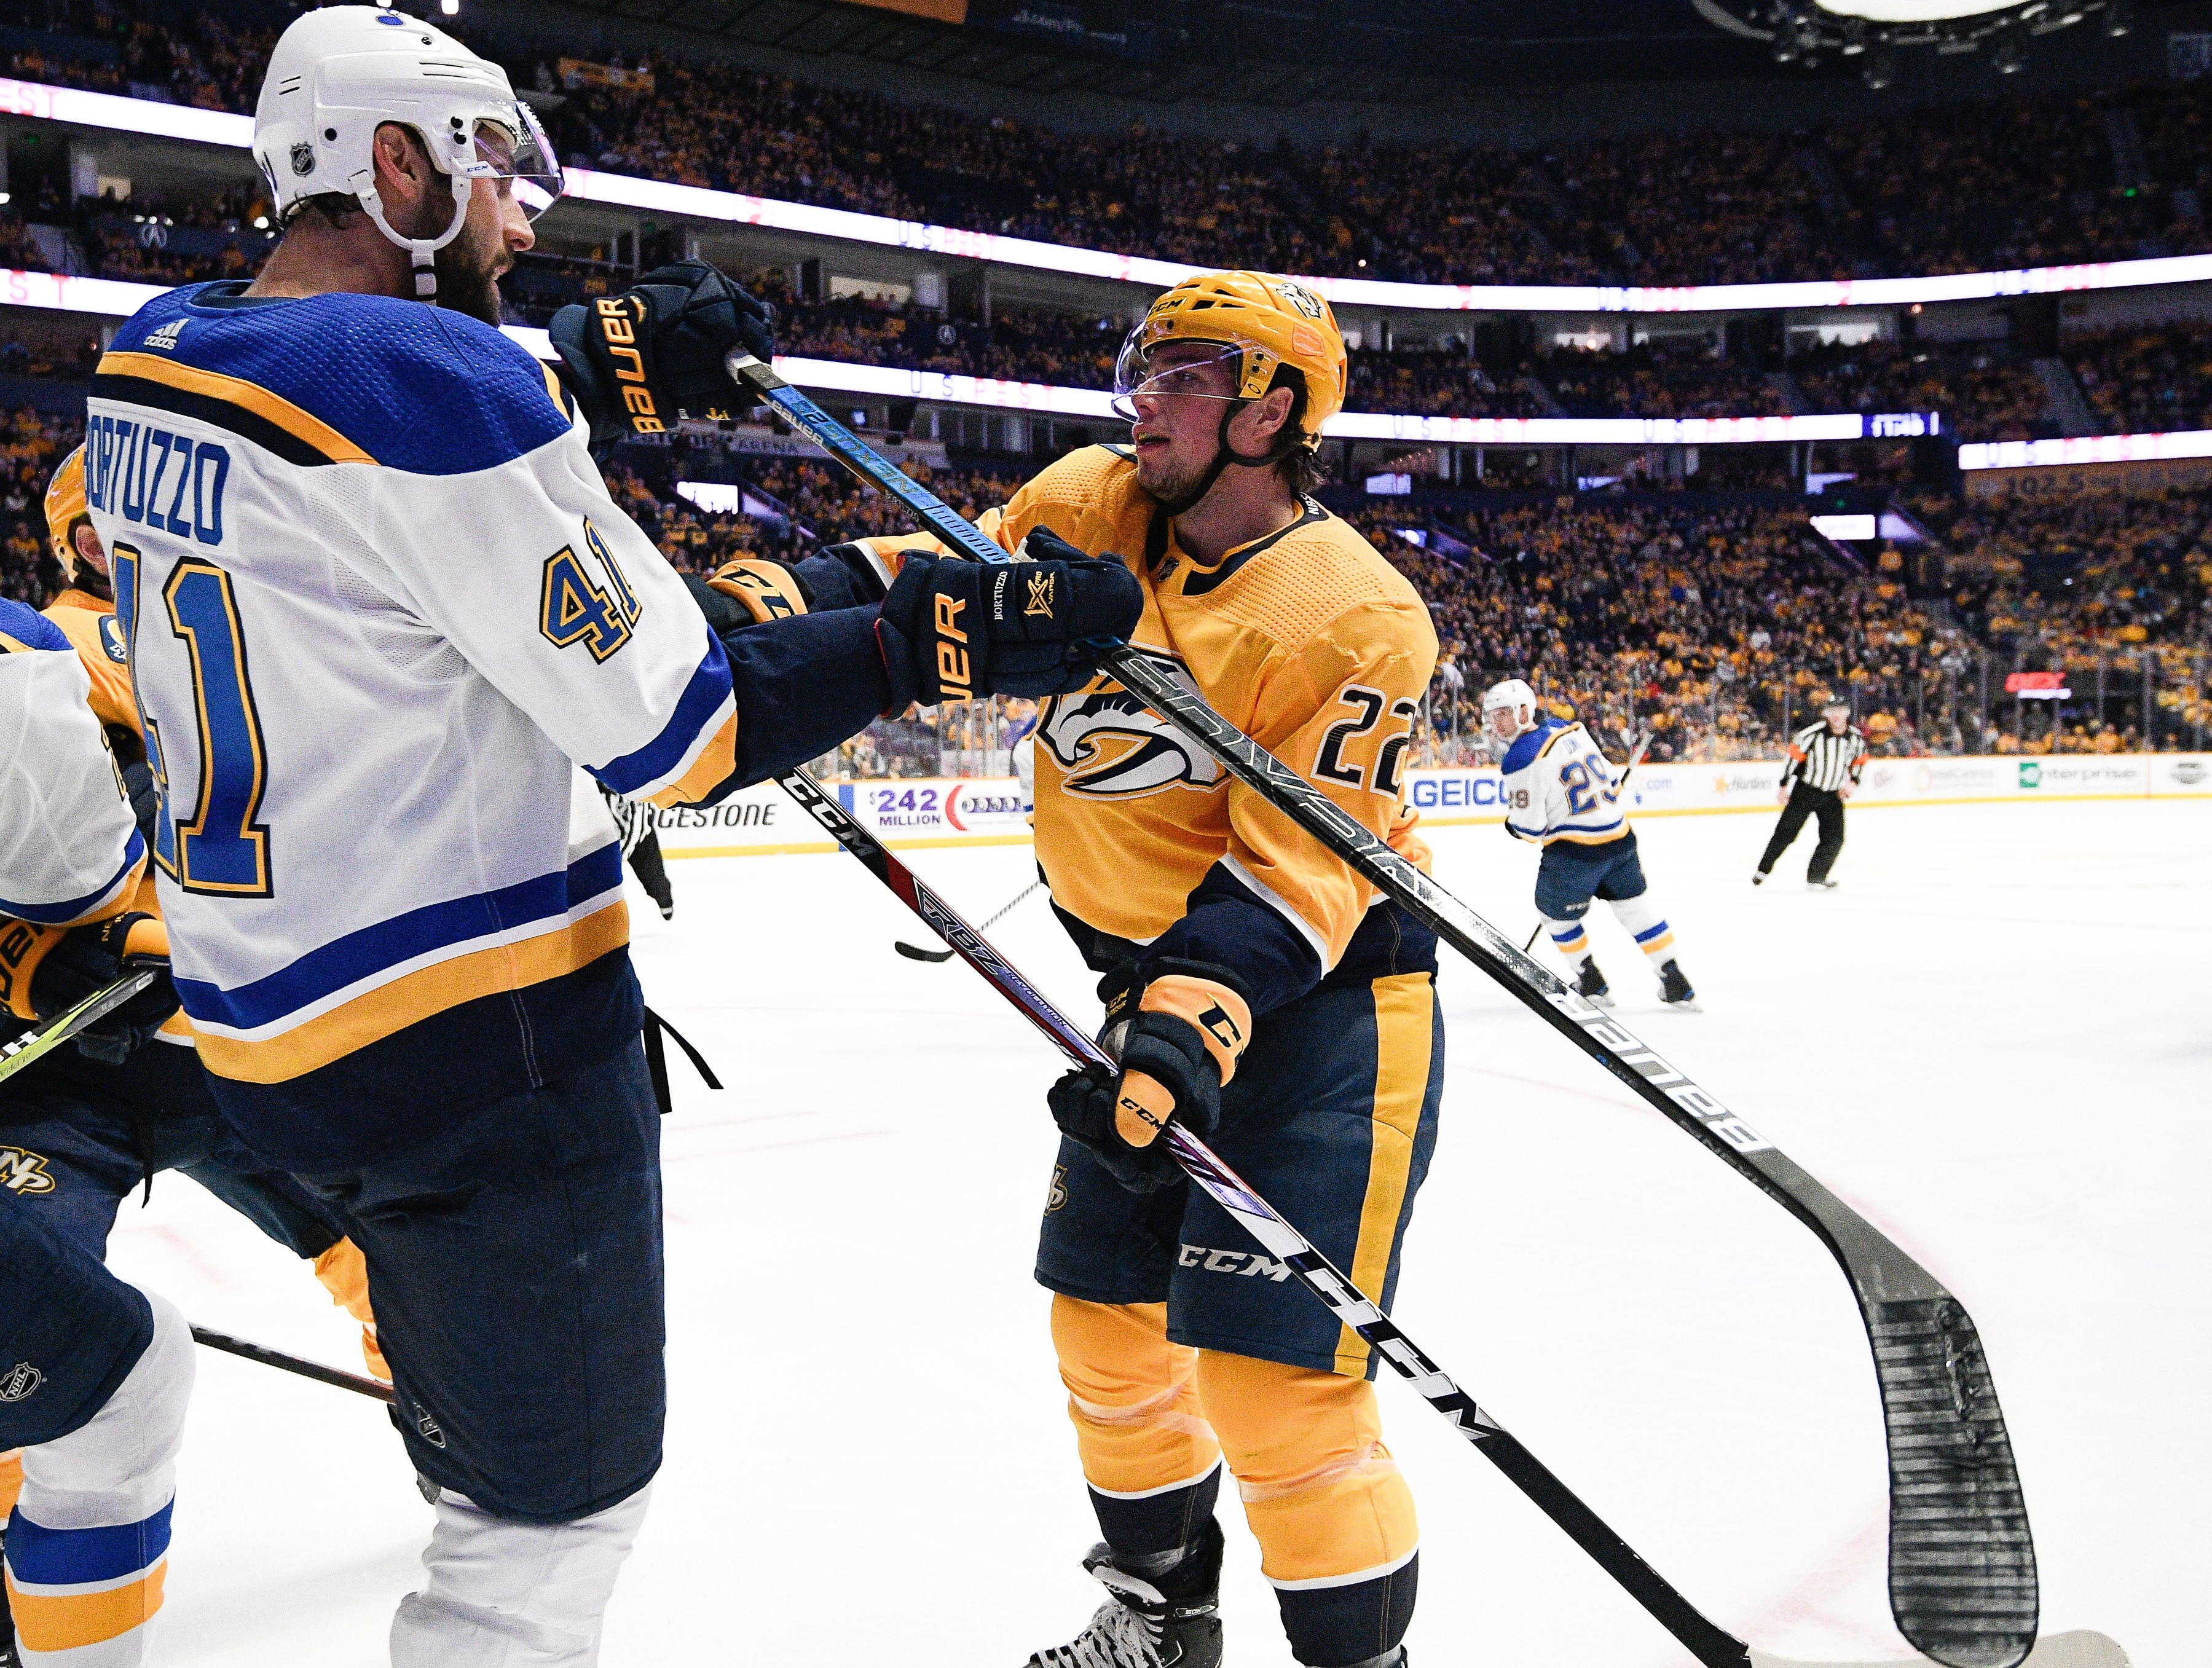 Blues defenseman Robert Bortuzzo (41) and Predators left wing Kevin Fiala (22) get into a shoving match during the first period at Bridgestone Arena Sunday Feb. 10, 2019 in Nashville, Tenn.